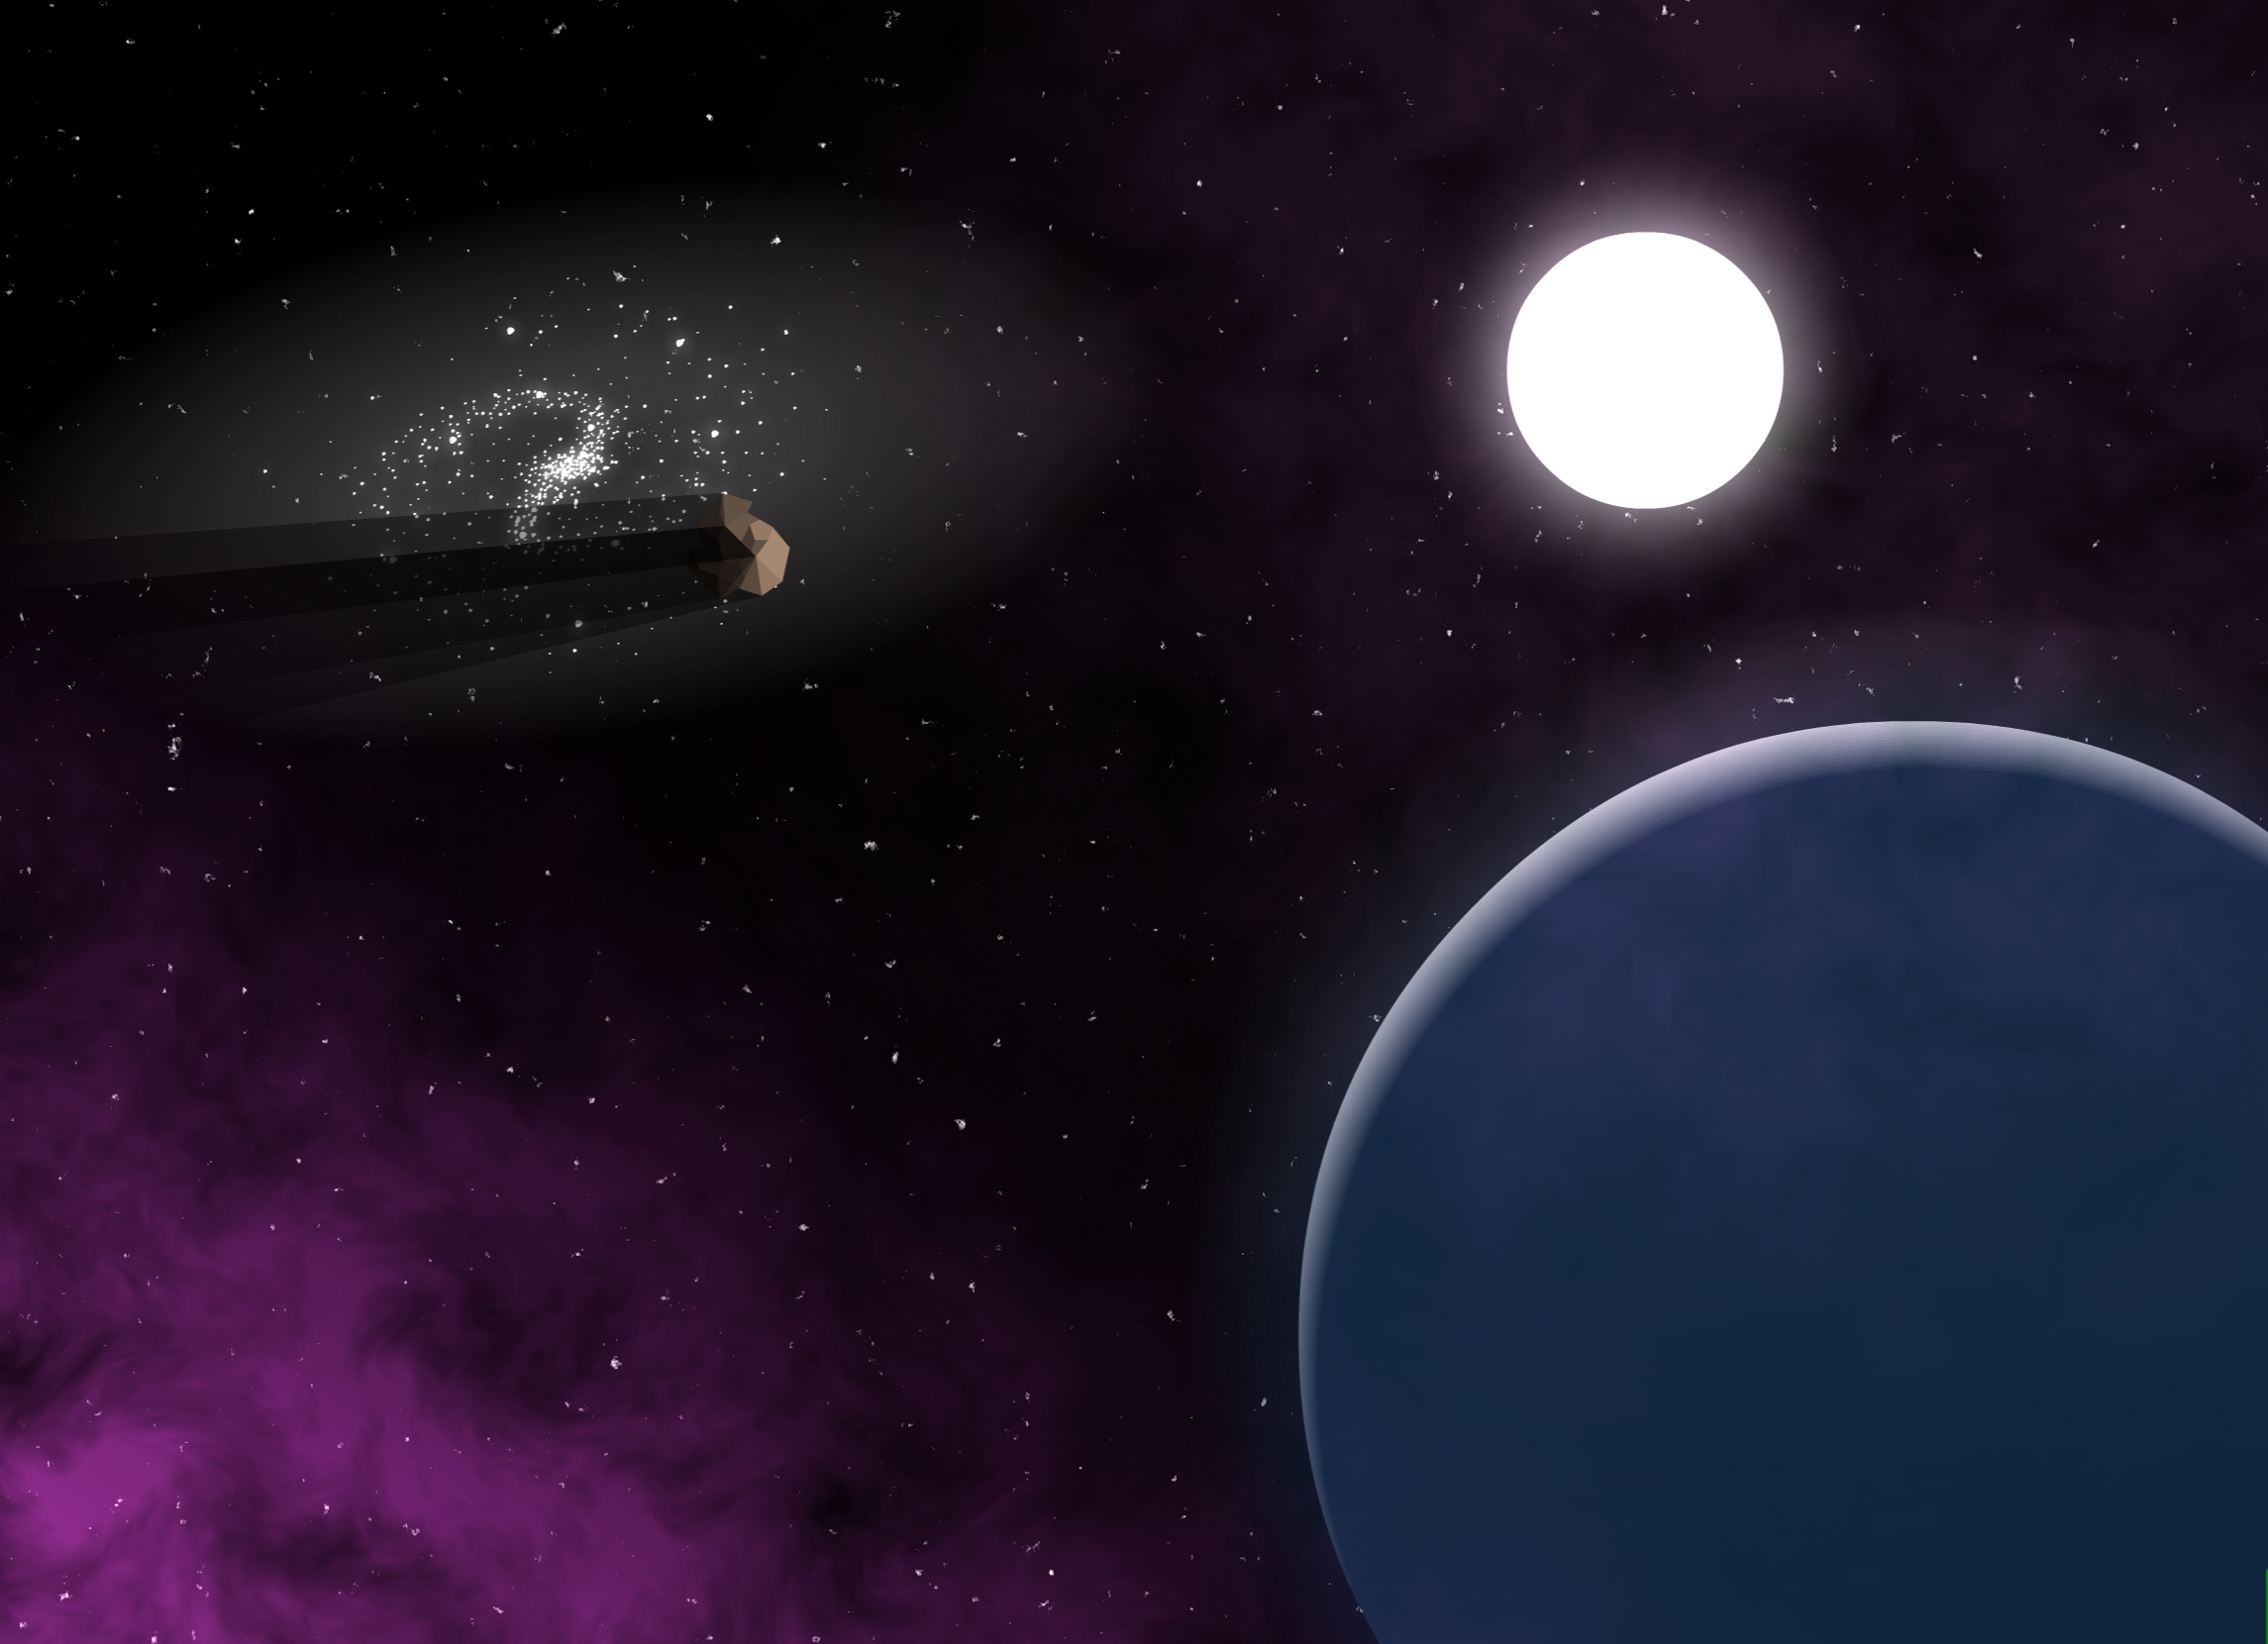 Space Image 1